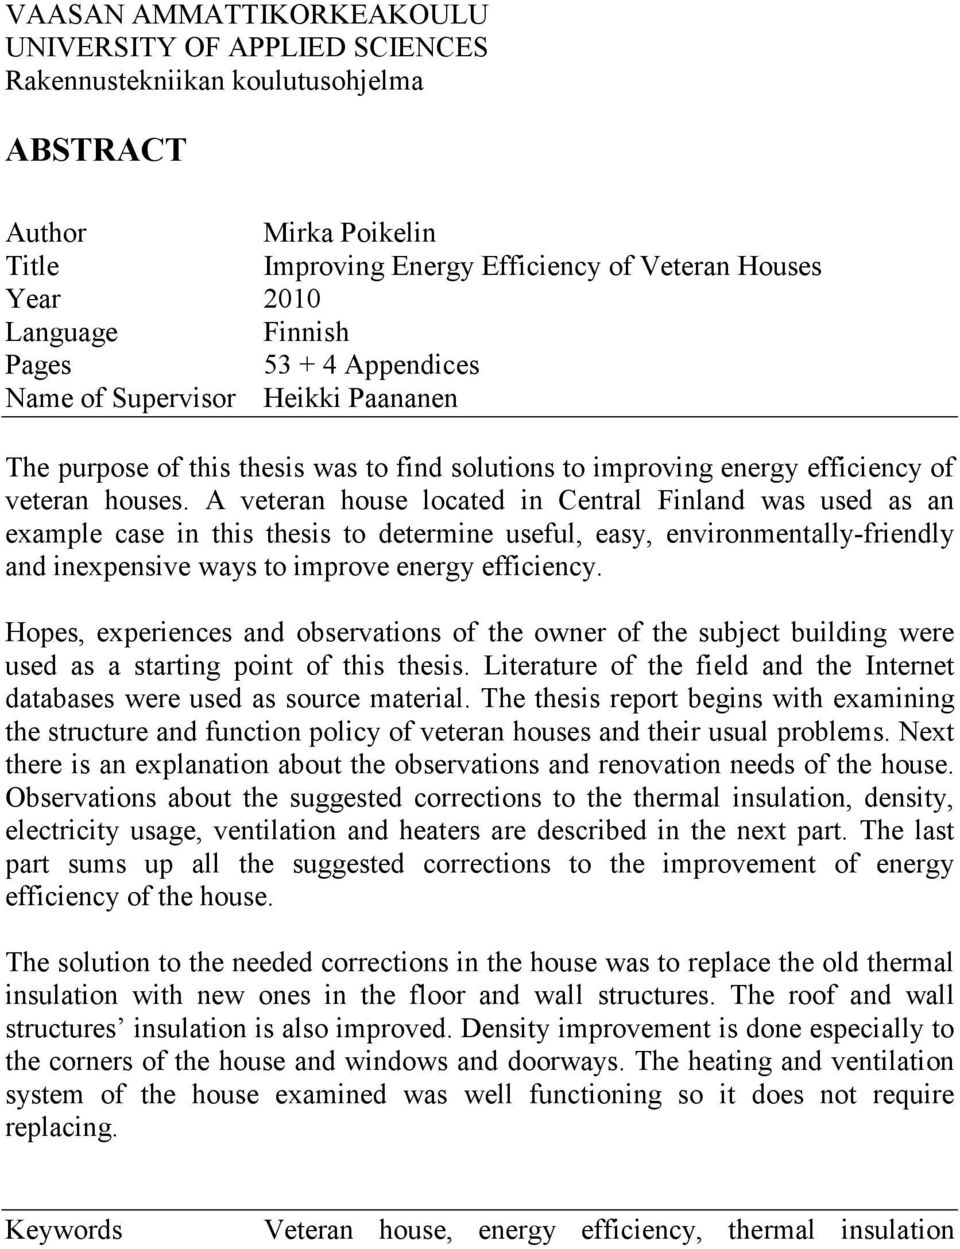 A veteran house located in Central Finland was used as an example case in this thesis to determine useful, easy, environmentally-friendly and inexpensive ways to improve energy efficiency.